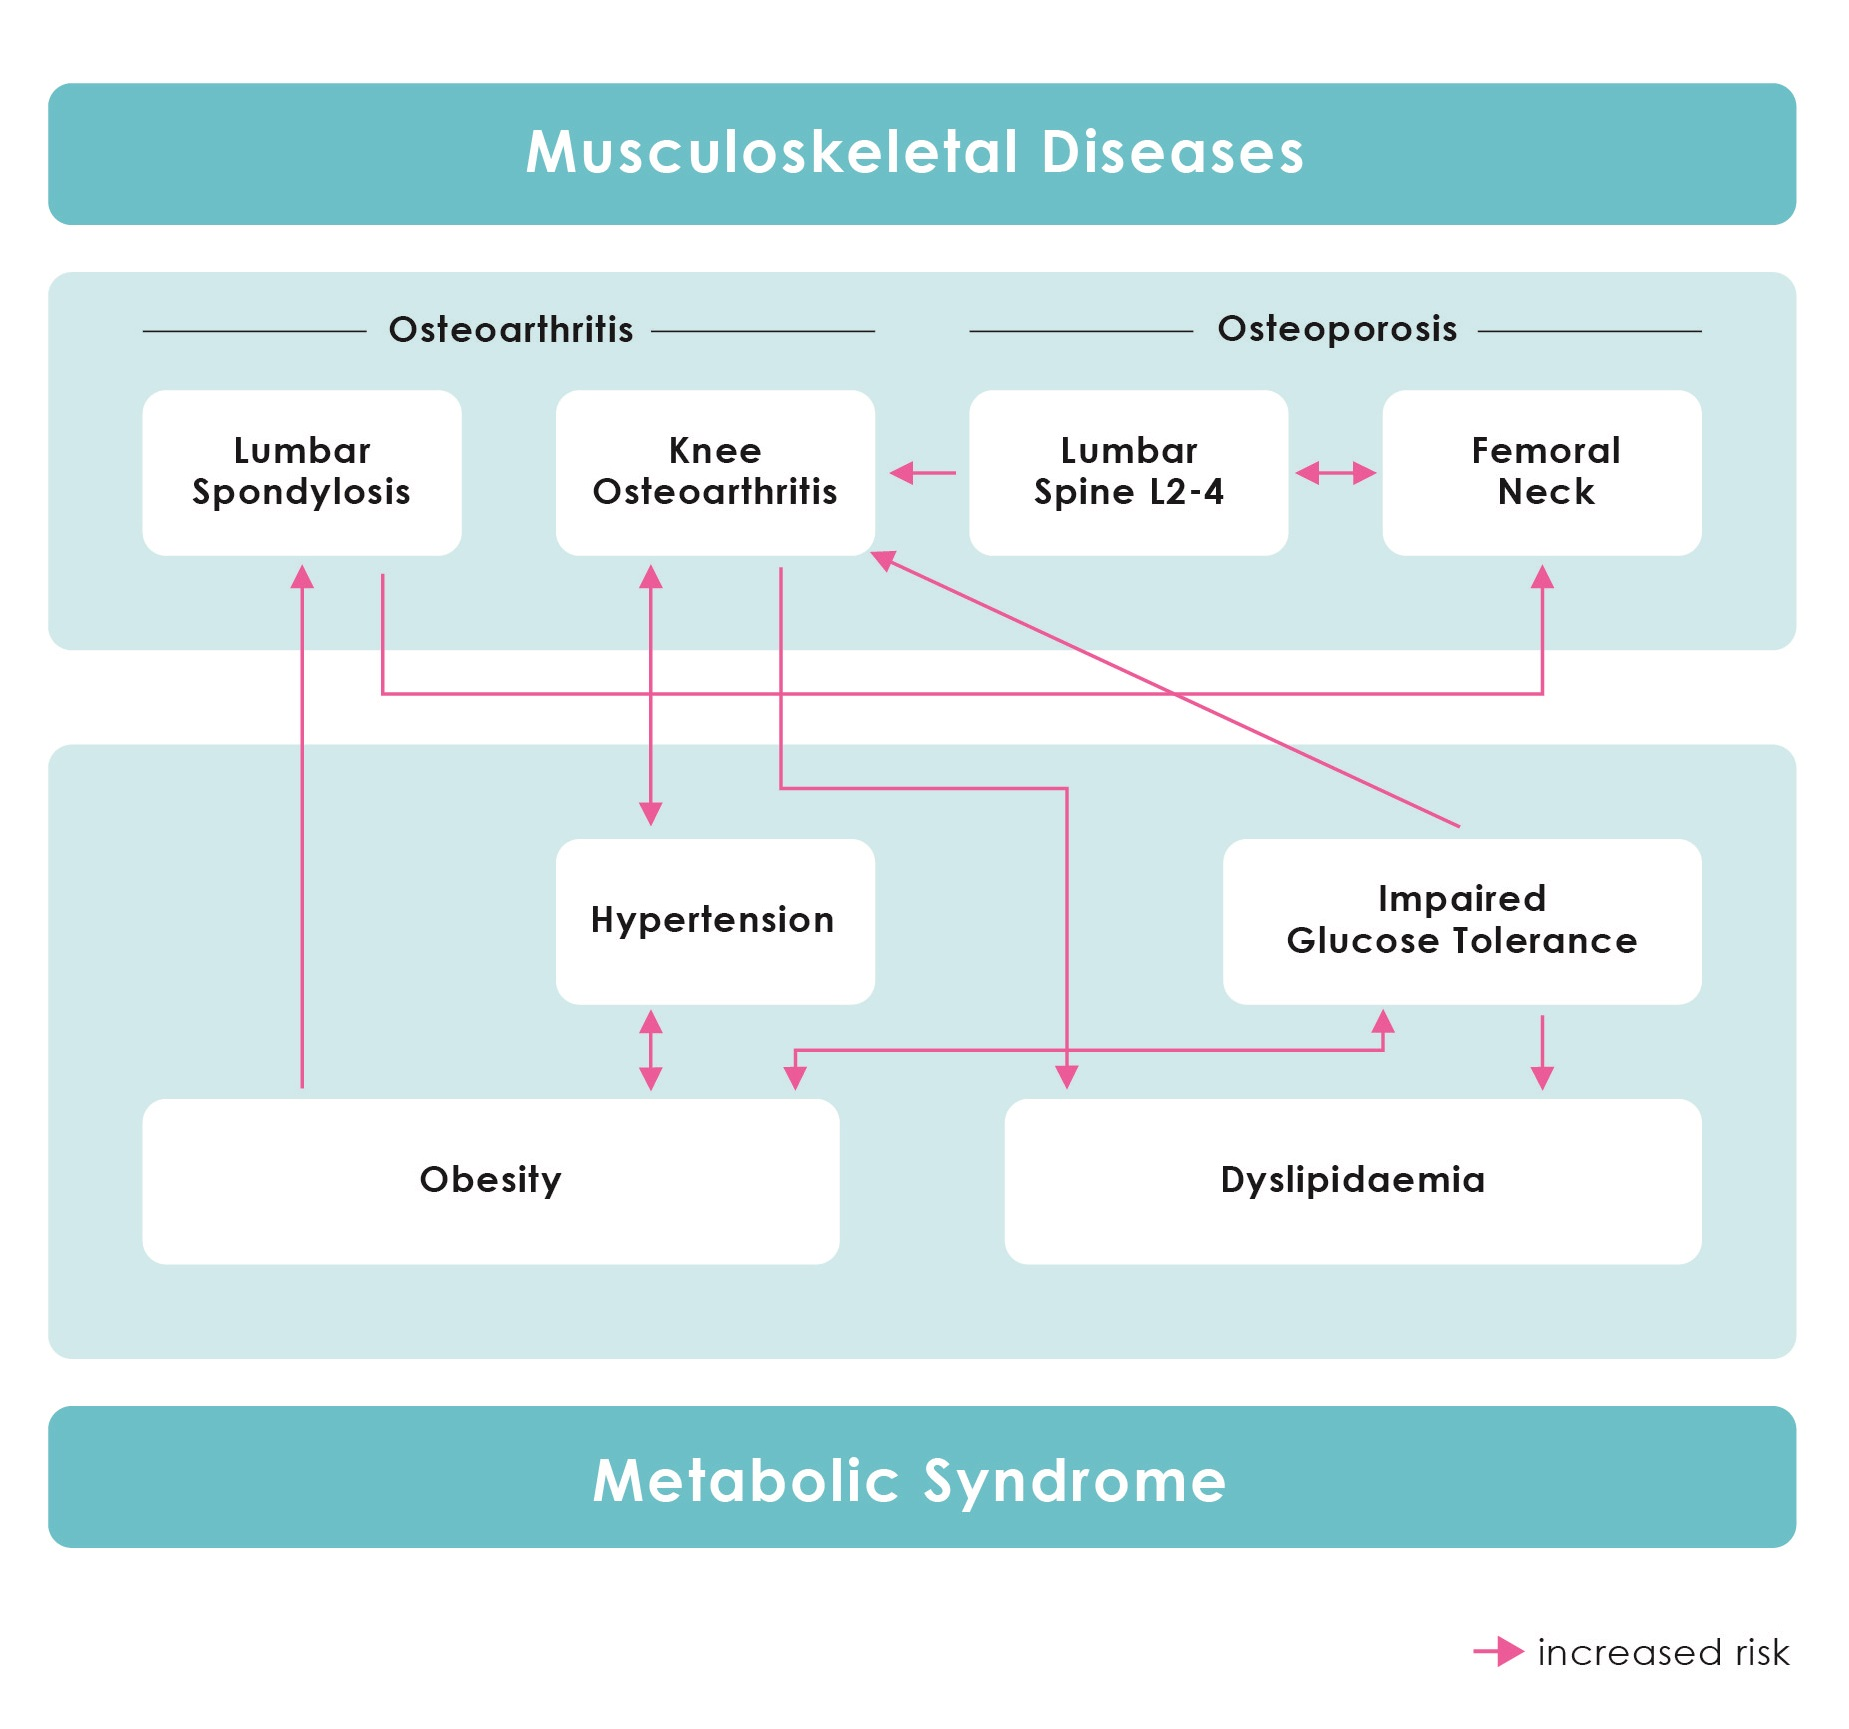 Figure 3. Conceptual diagram summarizing mutual associations among musculoskeletal diseases and metabolic syndrome components. Arrows linking two diseases and/or symptoms indicate the presence of the first condition increases the risk of the second occurring. Various factors are interrelated such that each may induce the symptoms of the other. (From Yoshimura N, et al: Mod Rheumatol. 2014 Nov 20:1-11. [Epub ahead of print]).